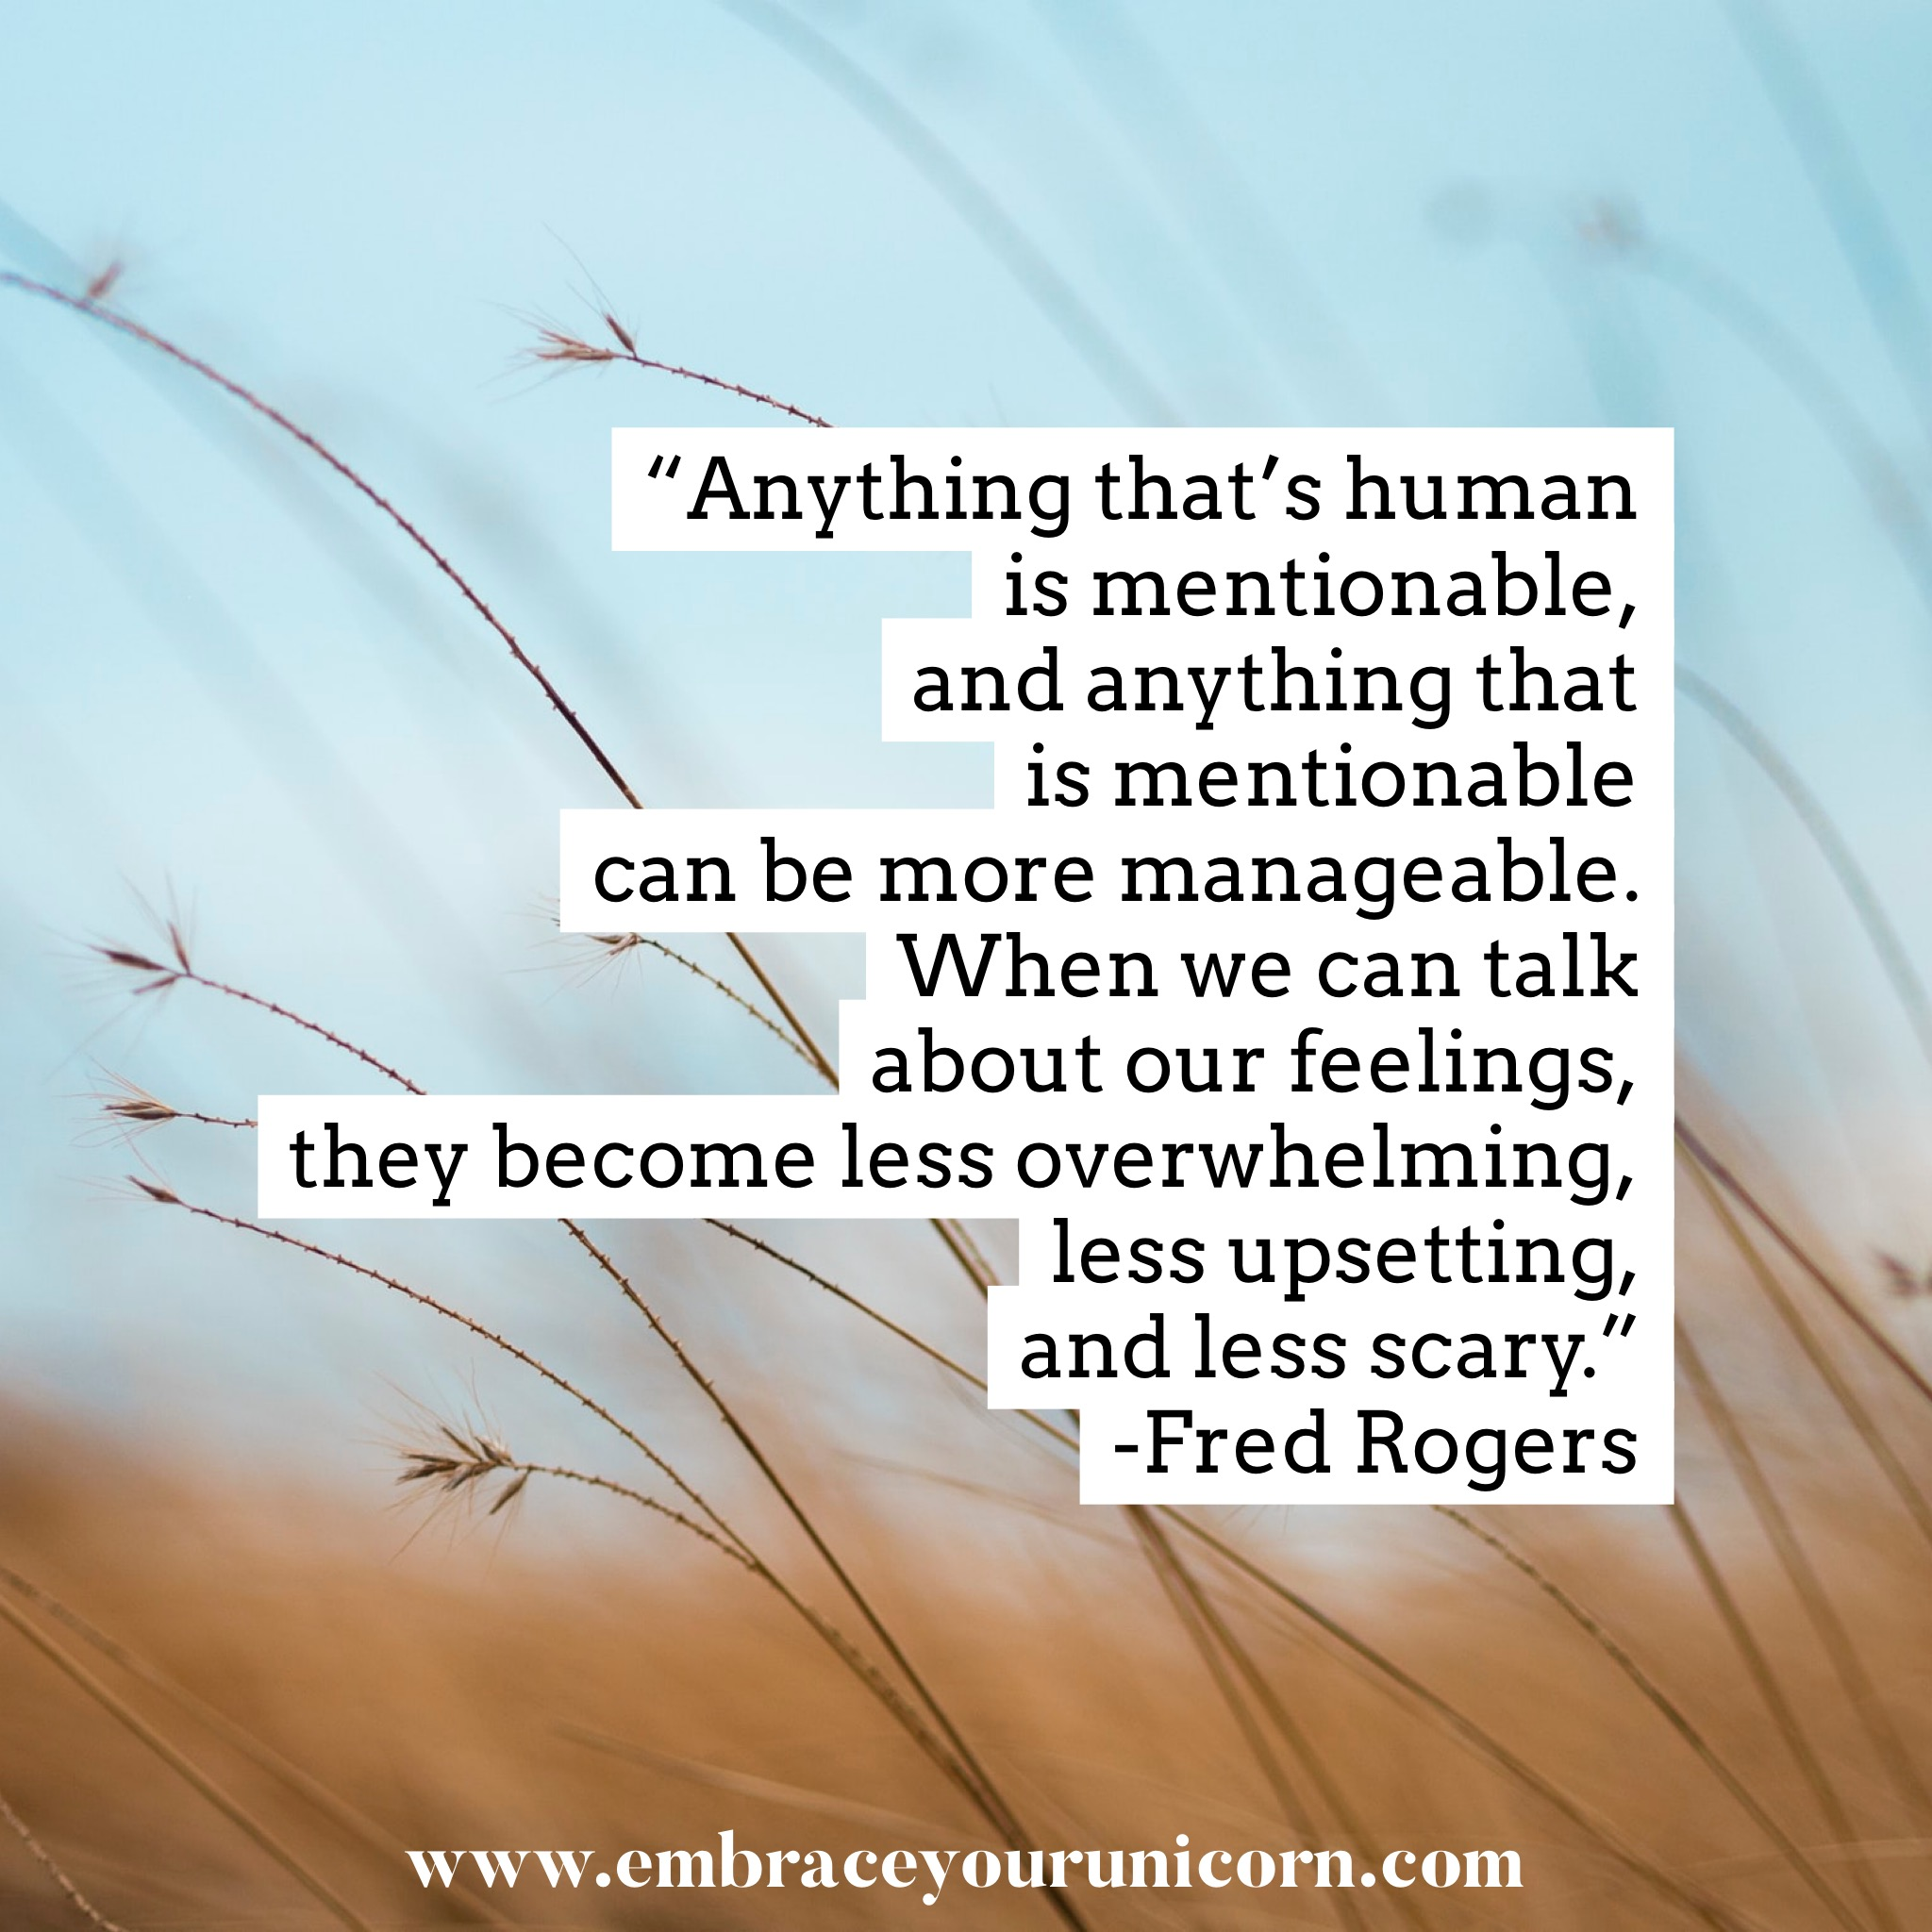 Fred Rogers quote.jpg